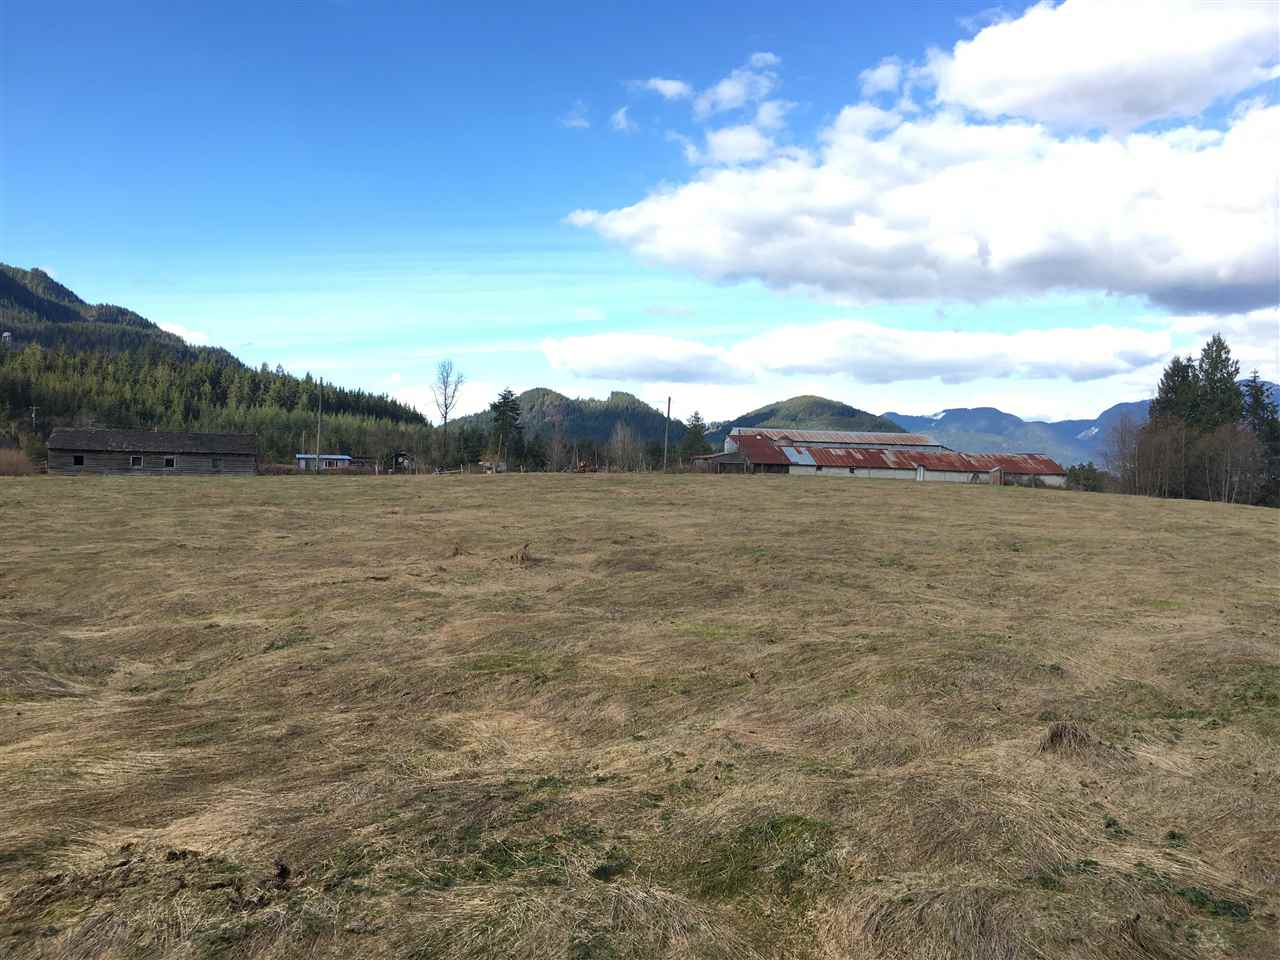 38.31 acres NOT IN ALR. Municipal water line through middle of property. 2 homes currently rented to excellent tenants. Land is all cleared and mostly flat, some slight rolling with 2 road frontages. Huge older barn as well. Excellent development property with close proximity to Maple Ridge.